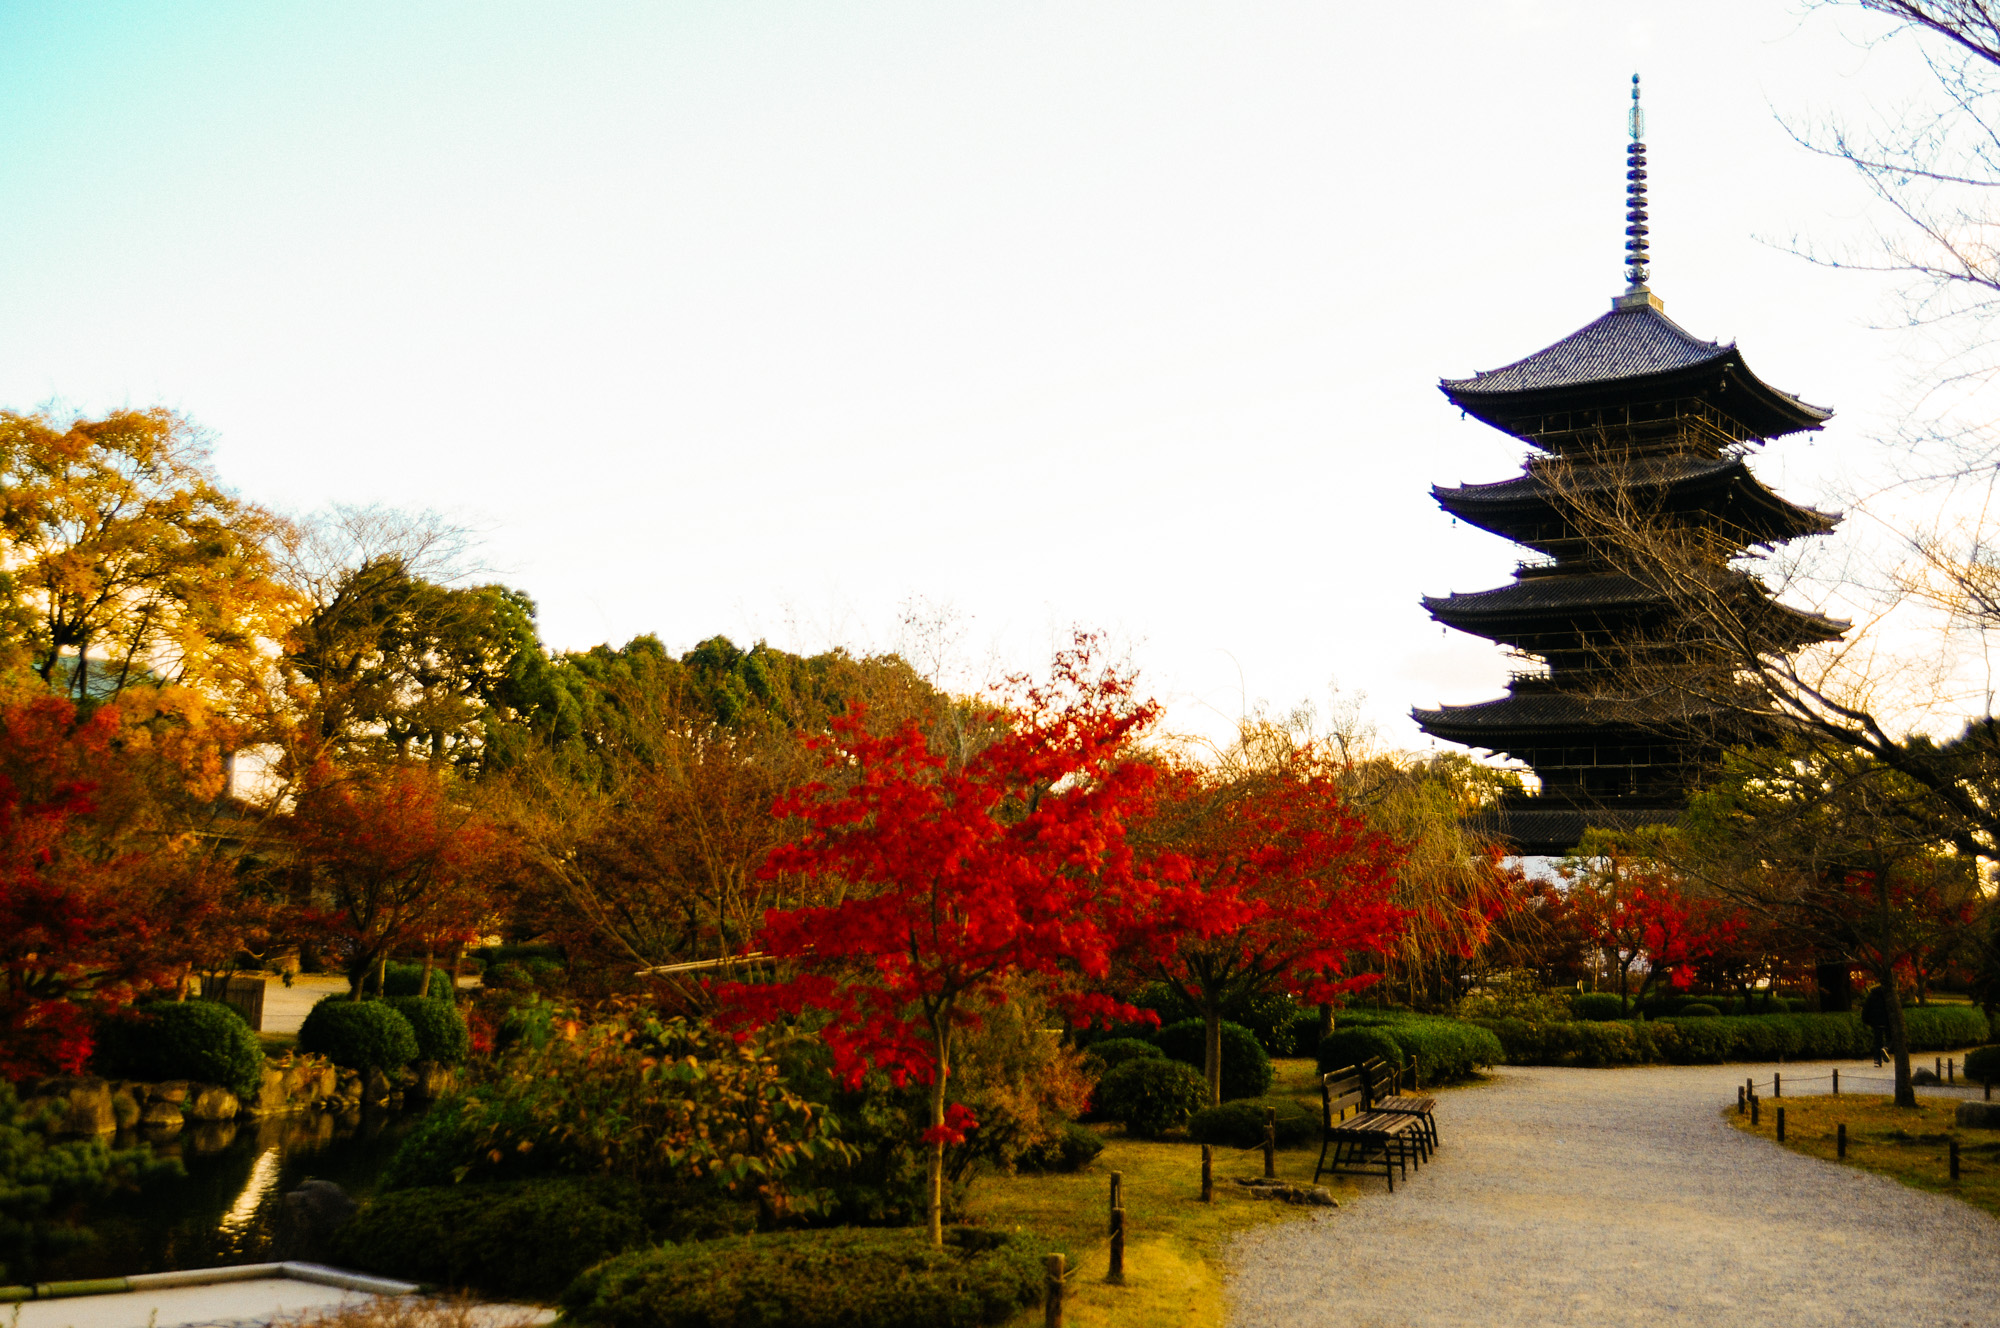 The five storied pagoda was original built in 826 is the tallest in all of Japan at 57 meters.